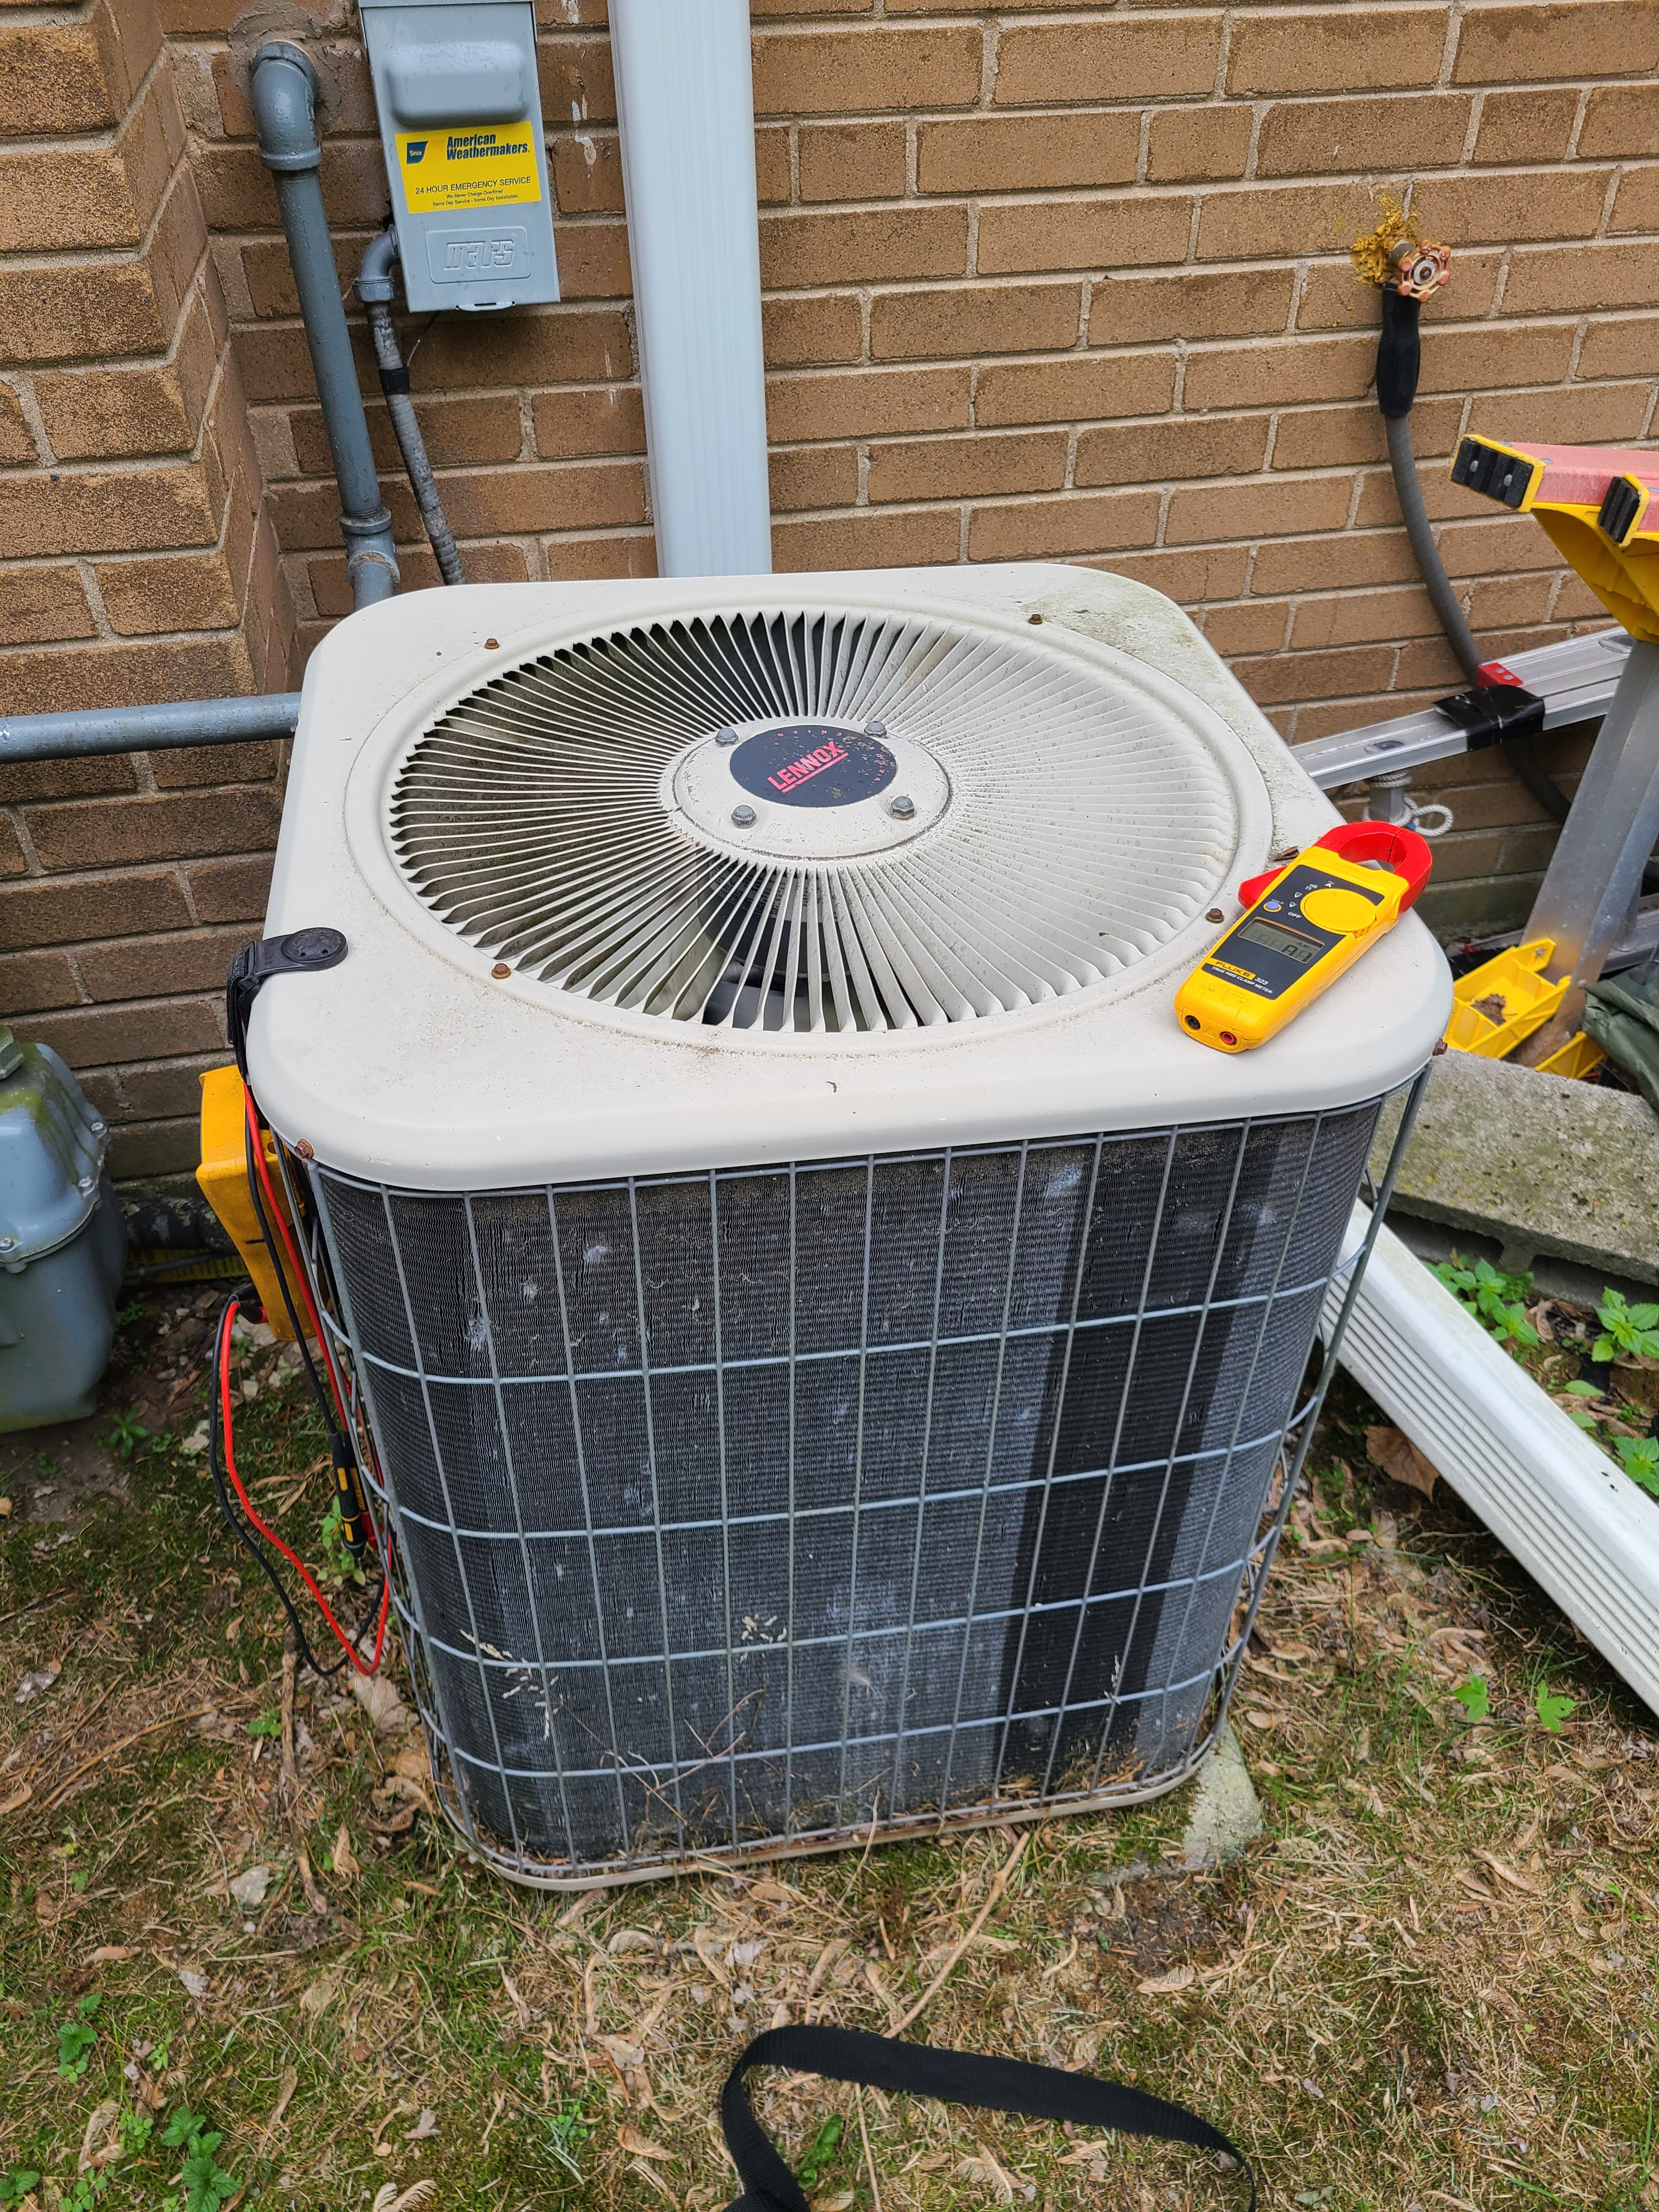 Lennox ac summer tune up. System cleaned and checked and ready for summer.